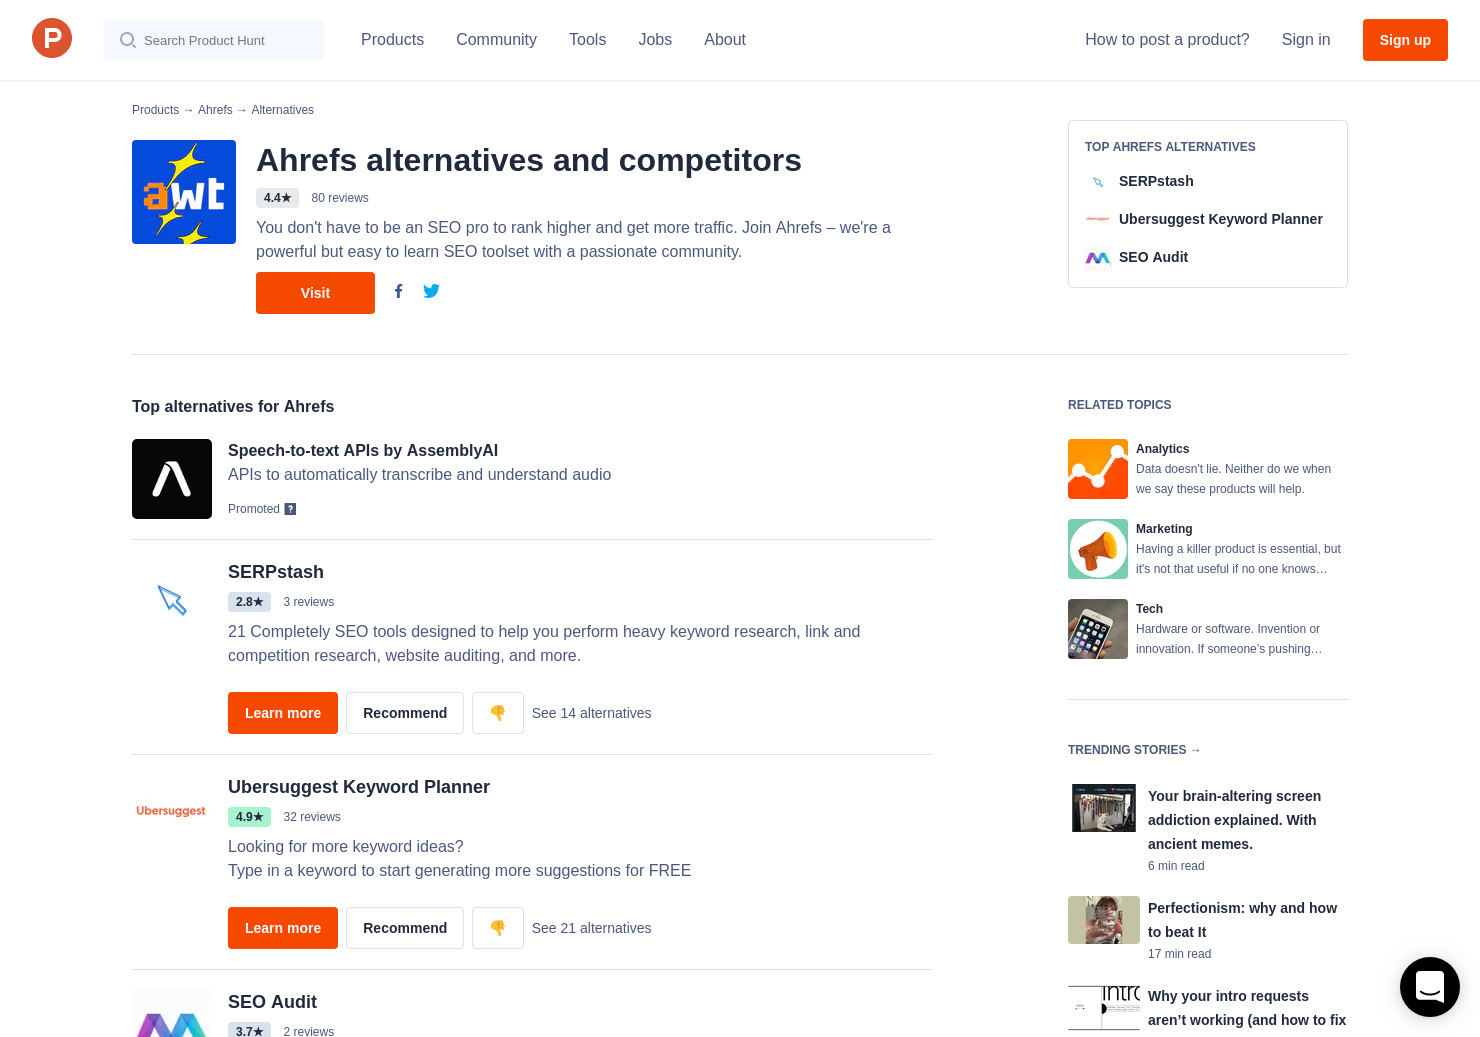 7 Alternatives to ahrefs | Product Hunt